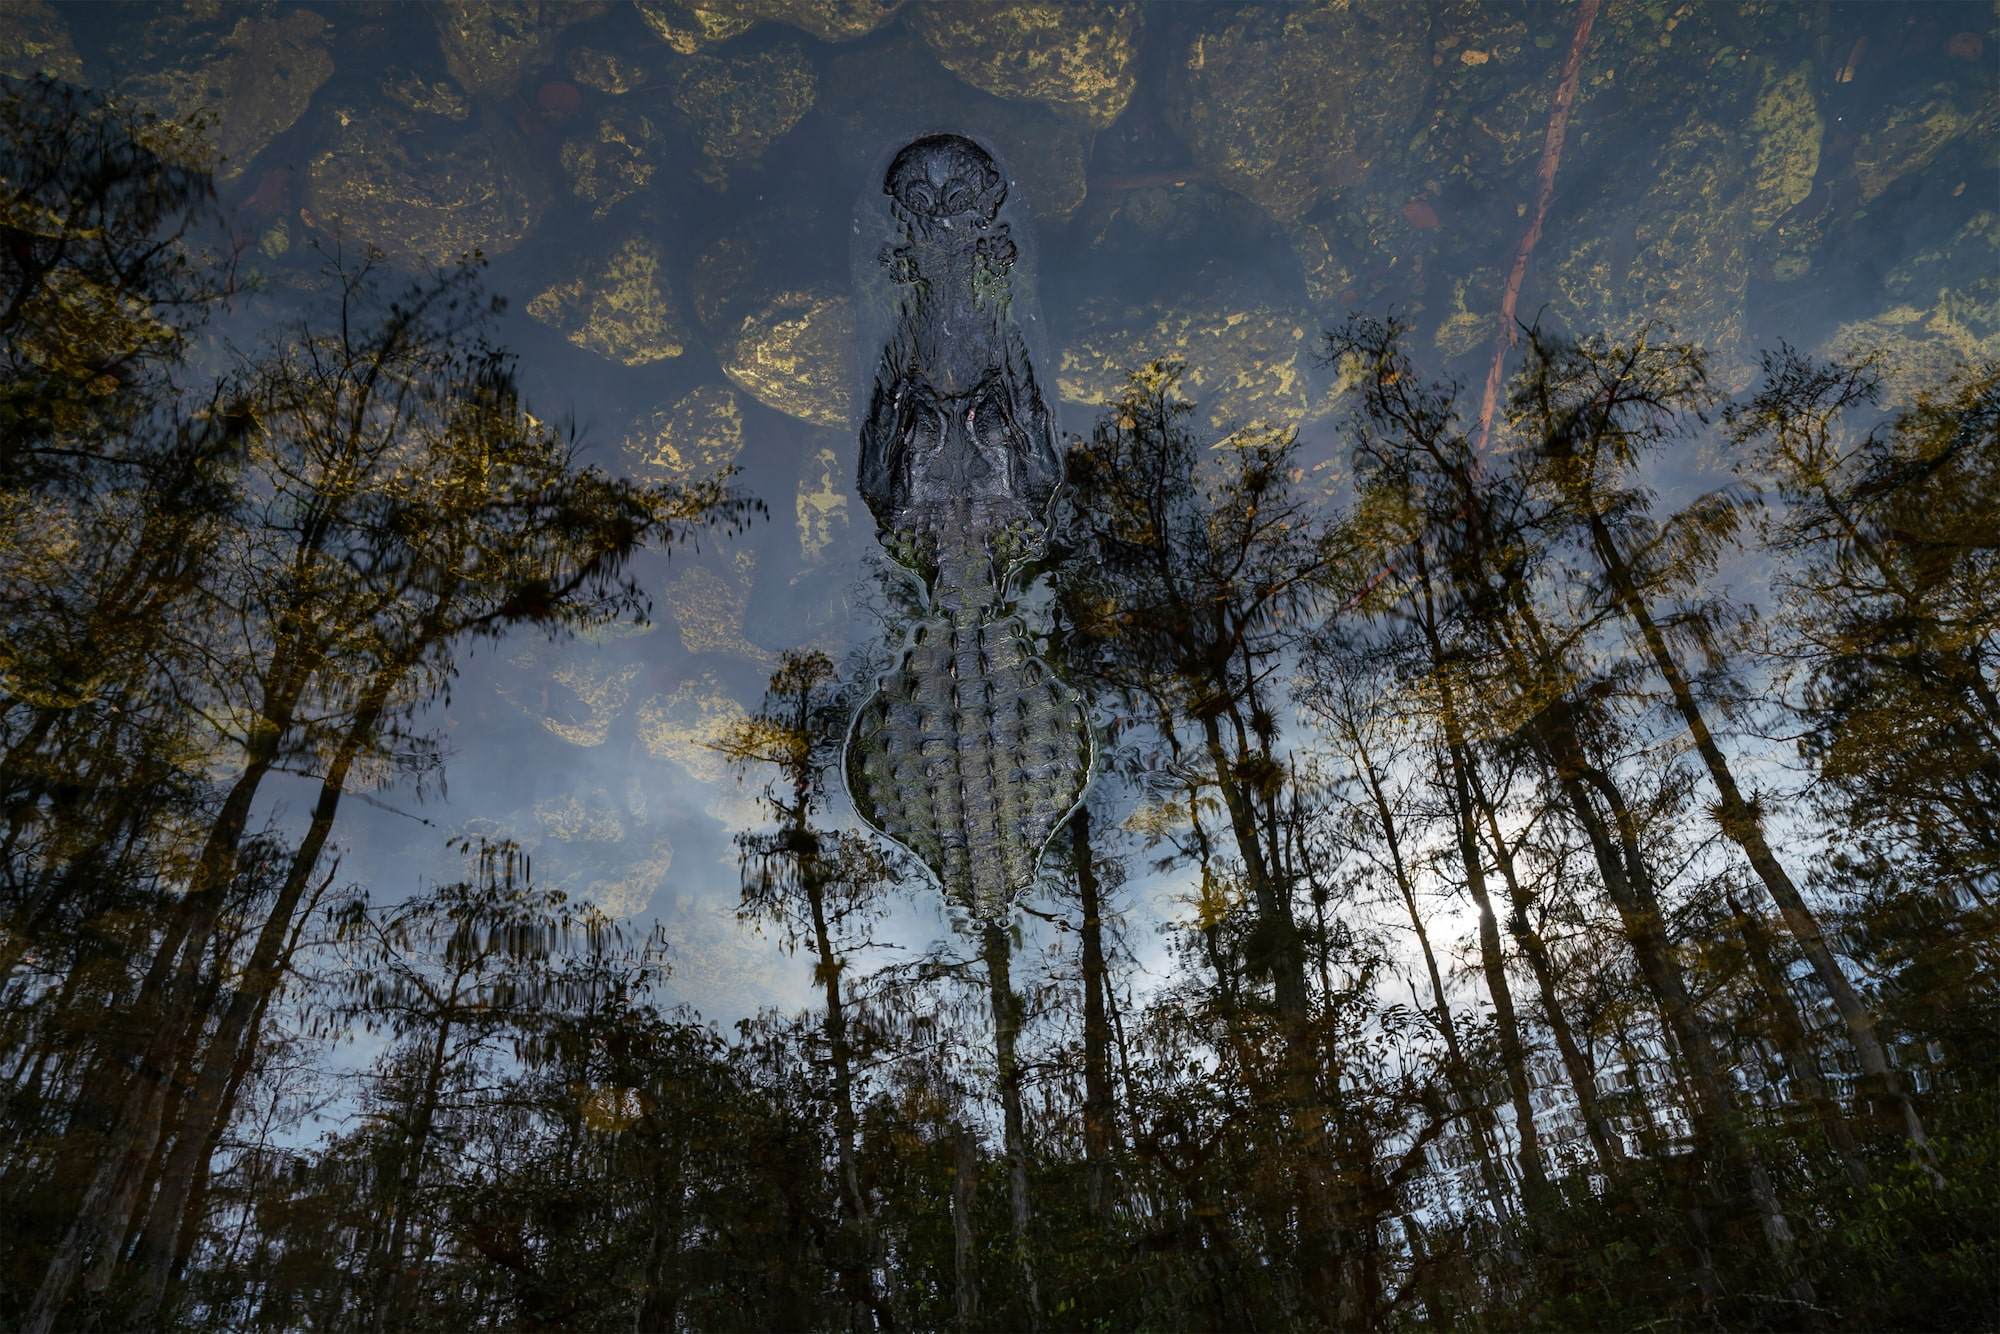 andreas-hemb-sony-alpha-7RM3-reflection-of-trees-in-water-hiding-an-alligator-that-appears-to-be-upside-down